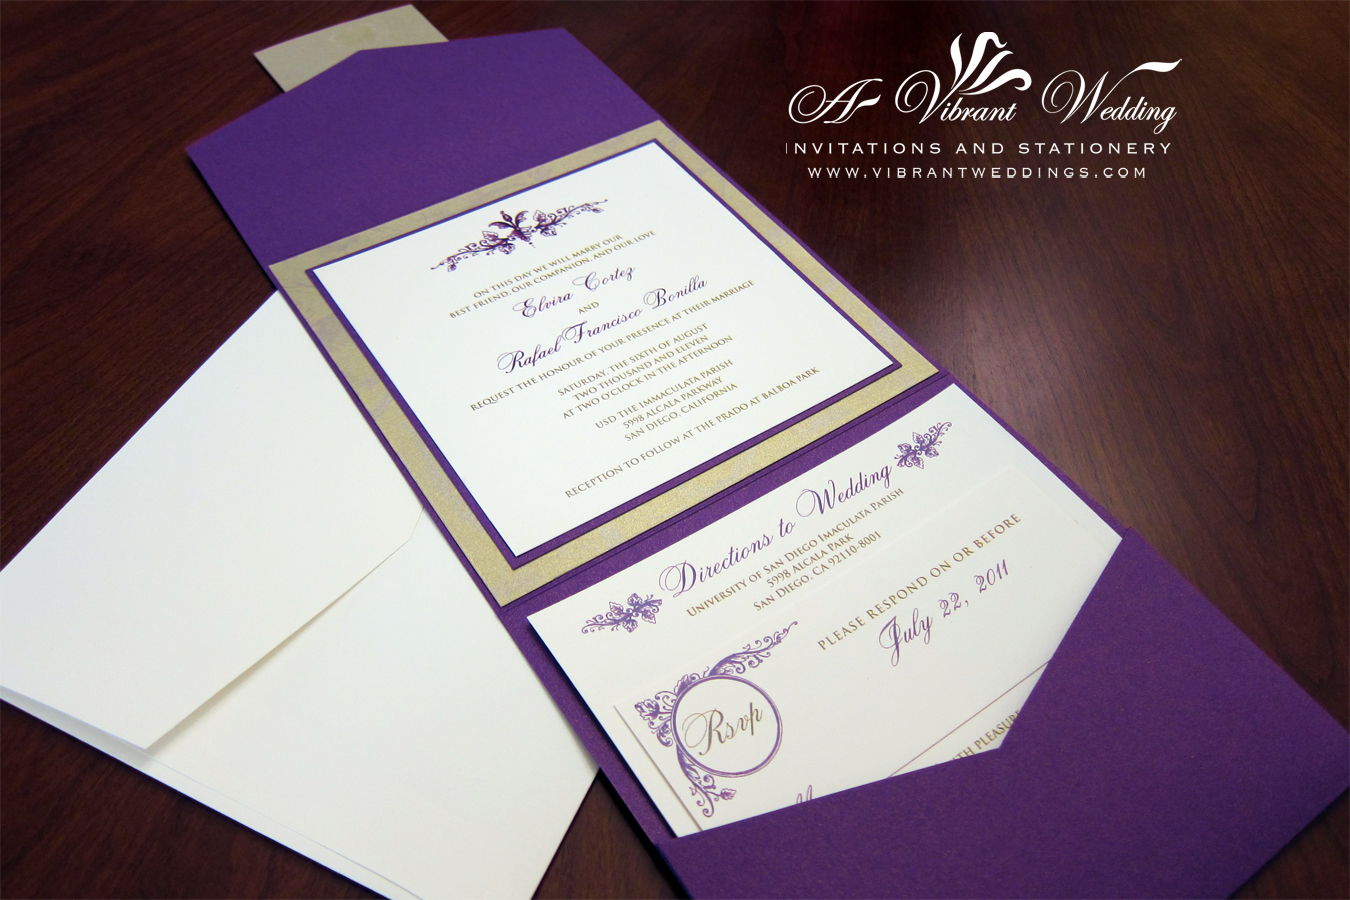 Photo Wedding Invitation: Royalty And Elegant Purple Wedding Invitations